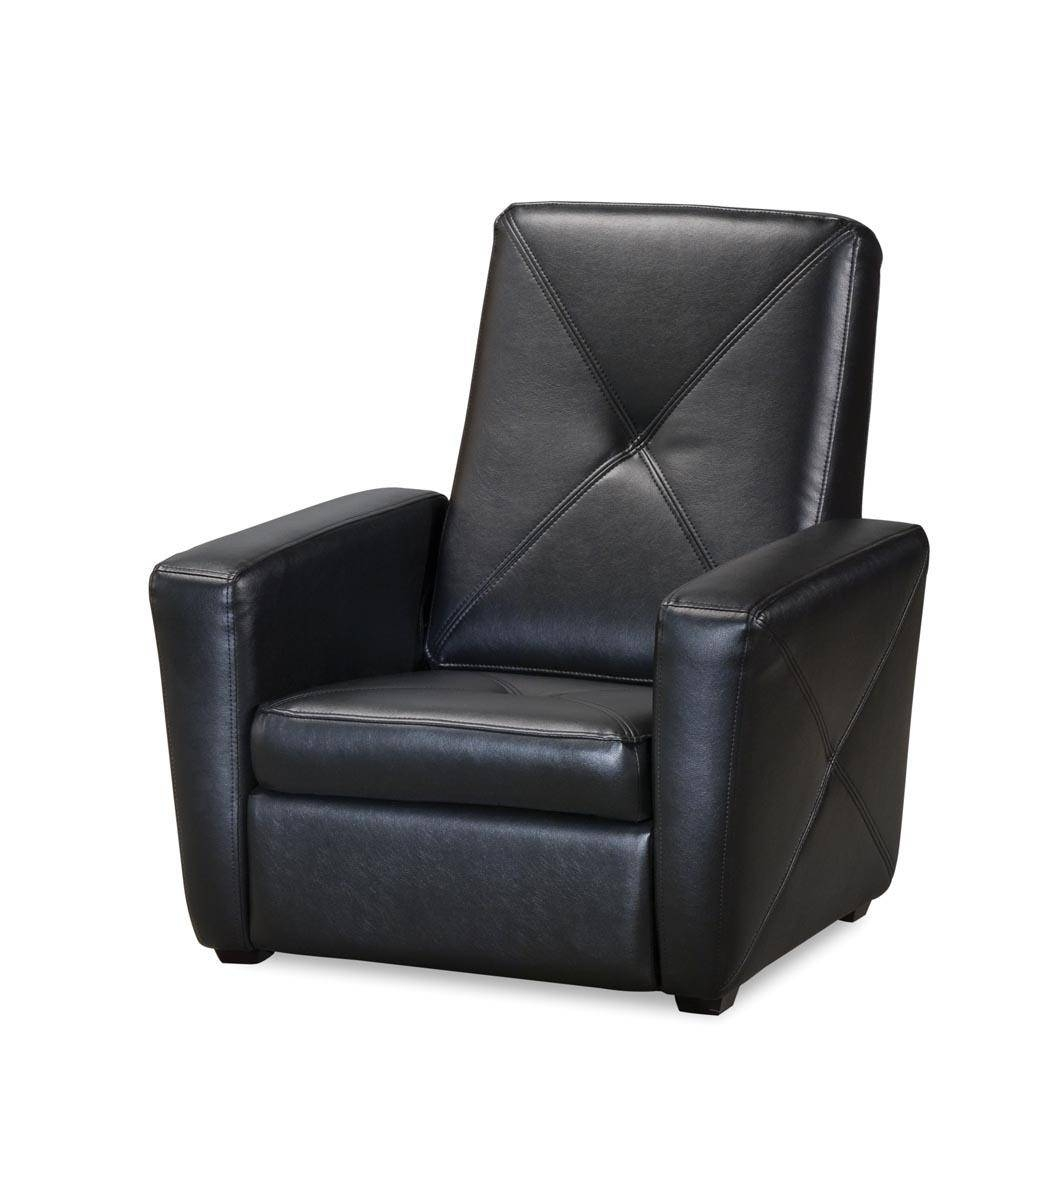 Home Styles Gaming Chairs Folding Gaming Chair/ottoman - Ahfa within Gaming Sofa Chairs (Image 12 of 15)